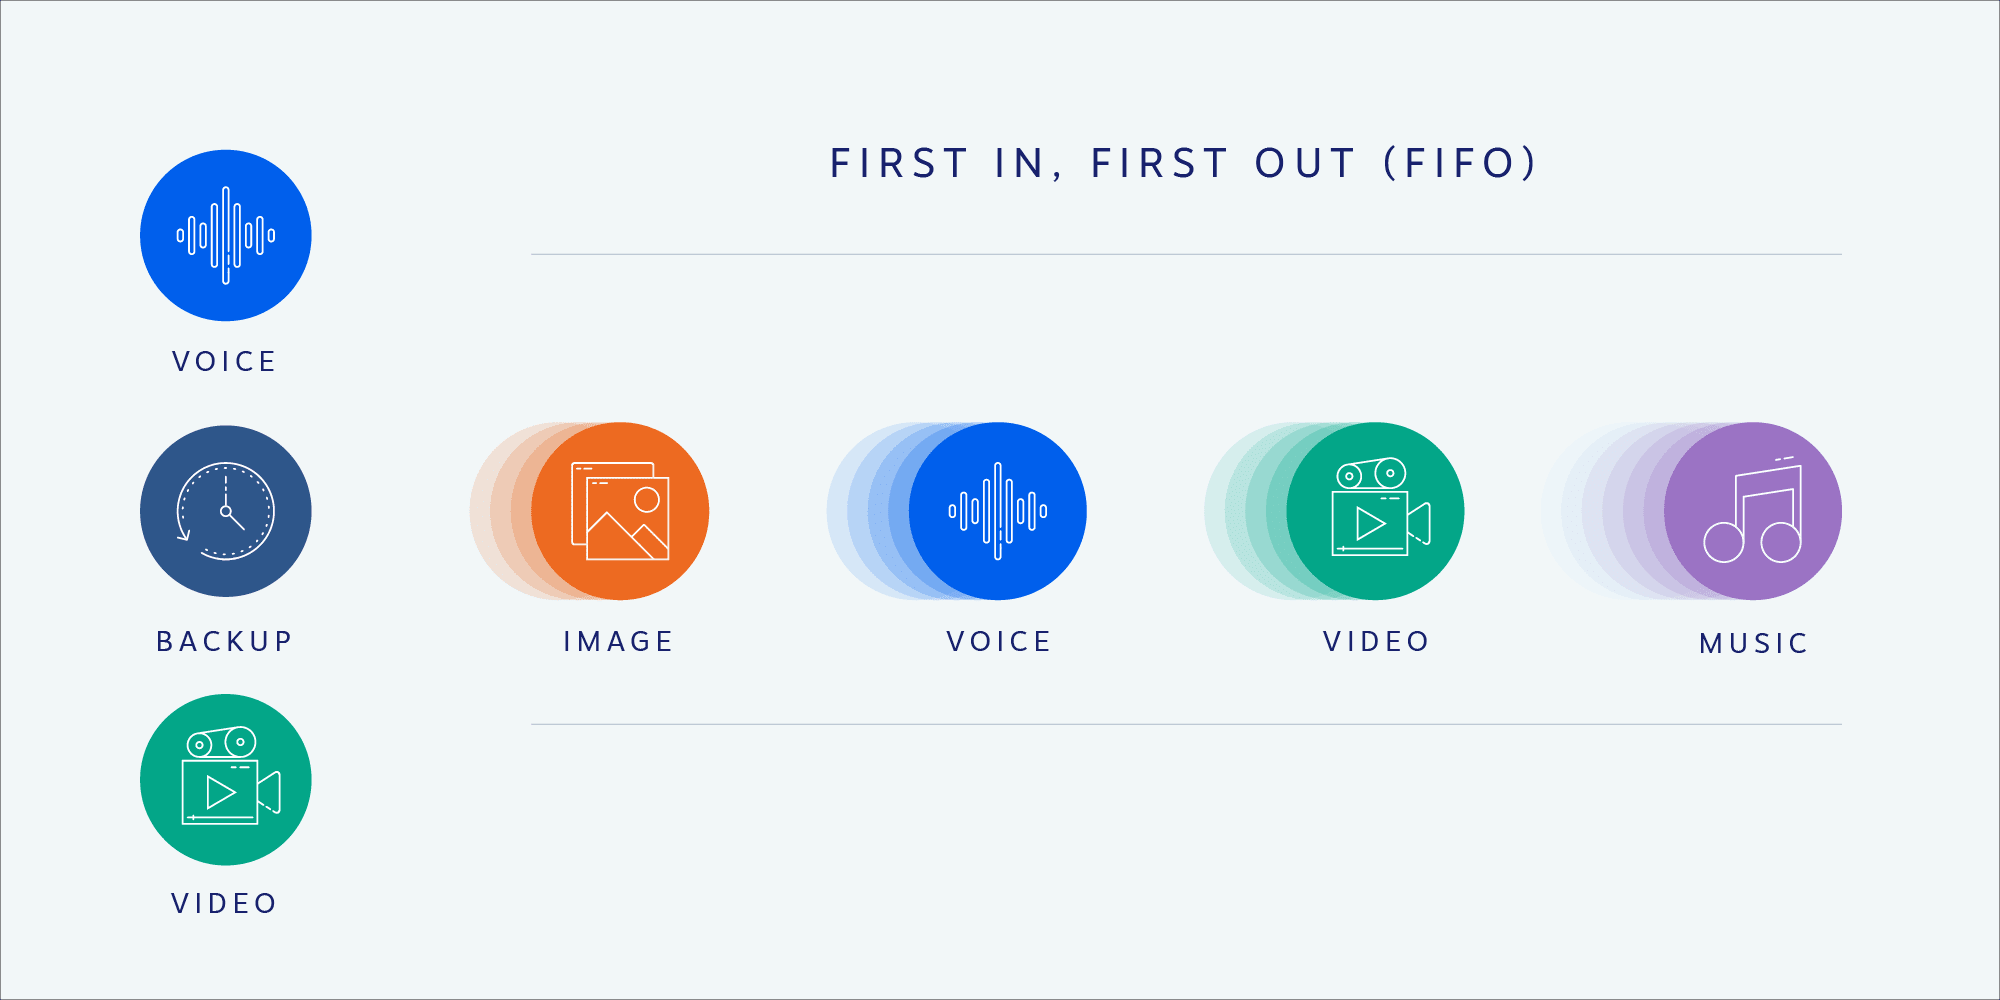 First In Last Out (FILO) - Network Traffic Strategy